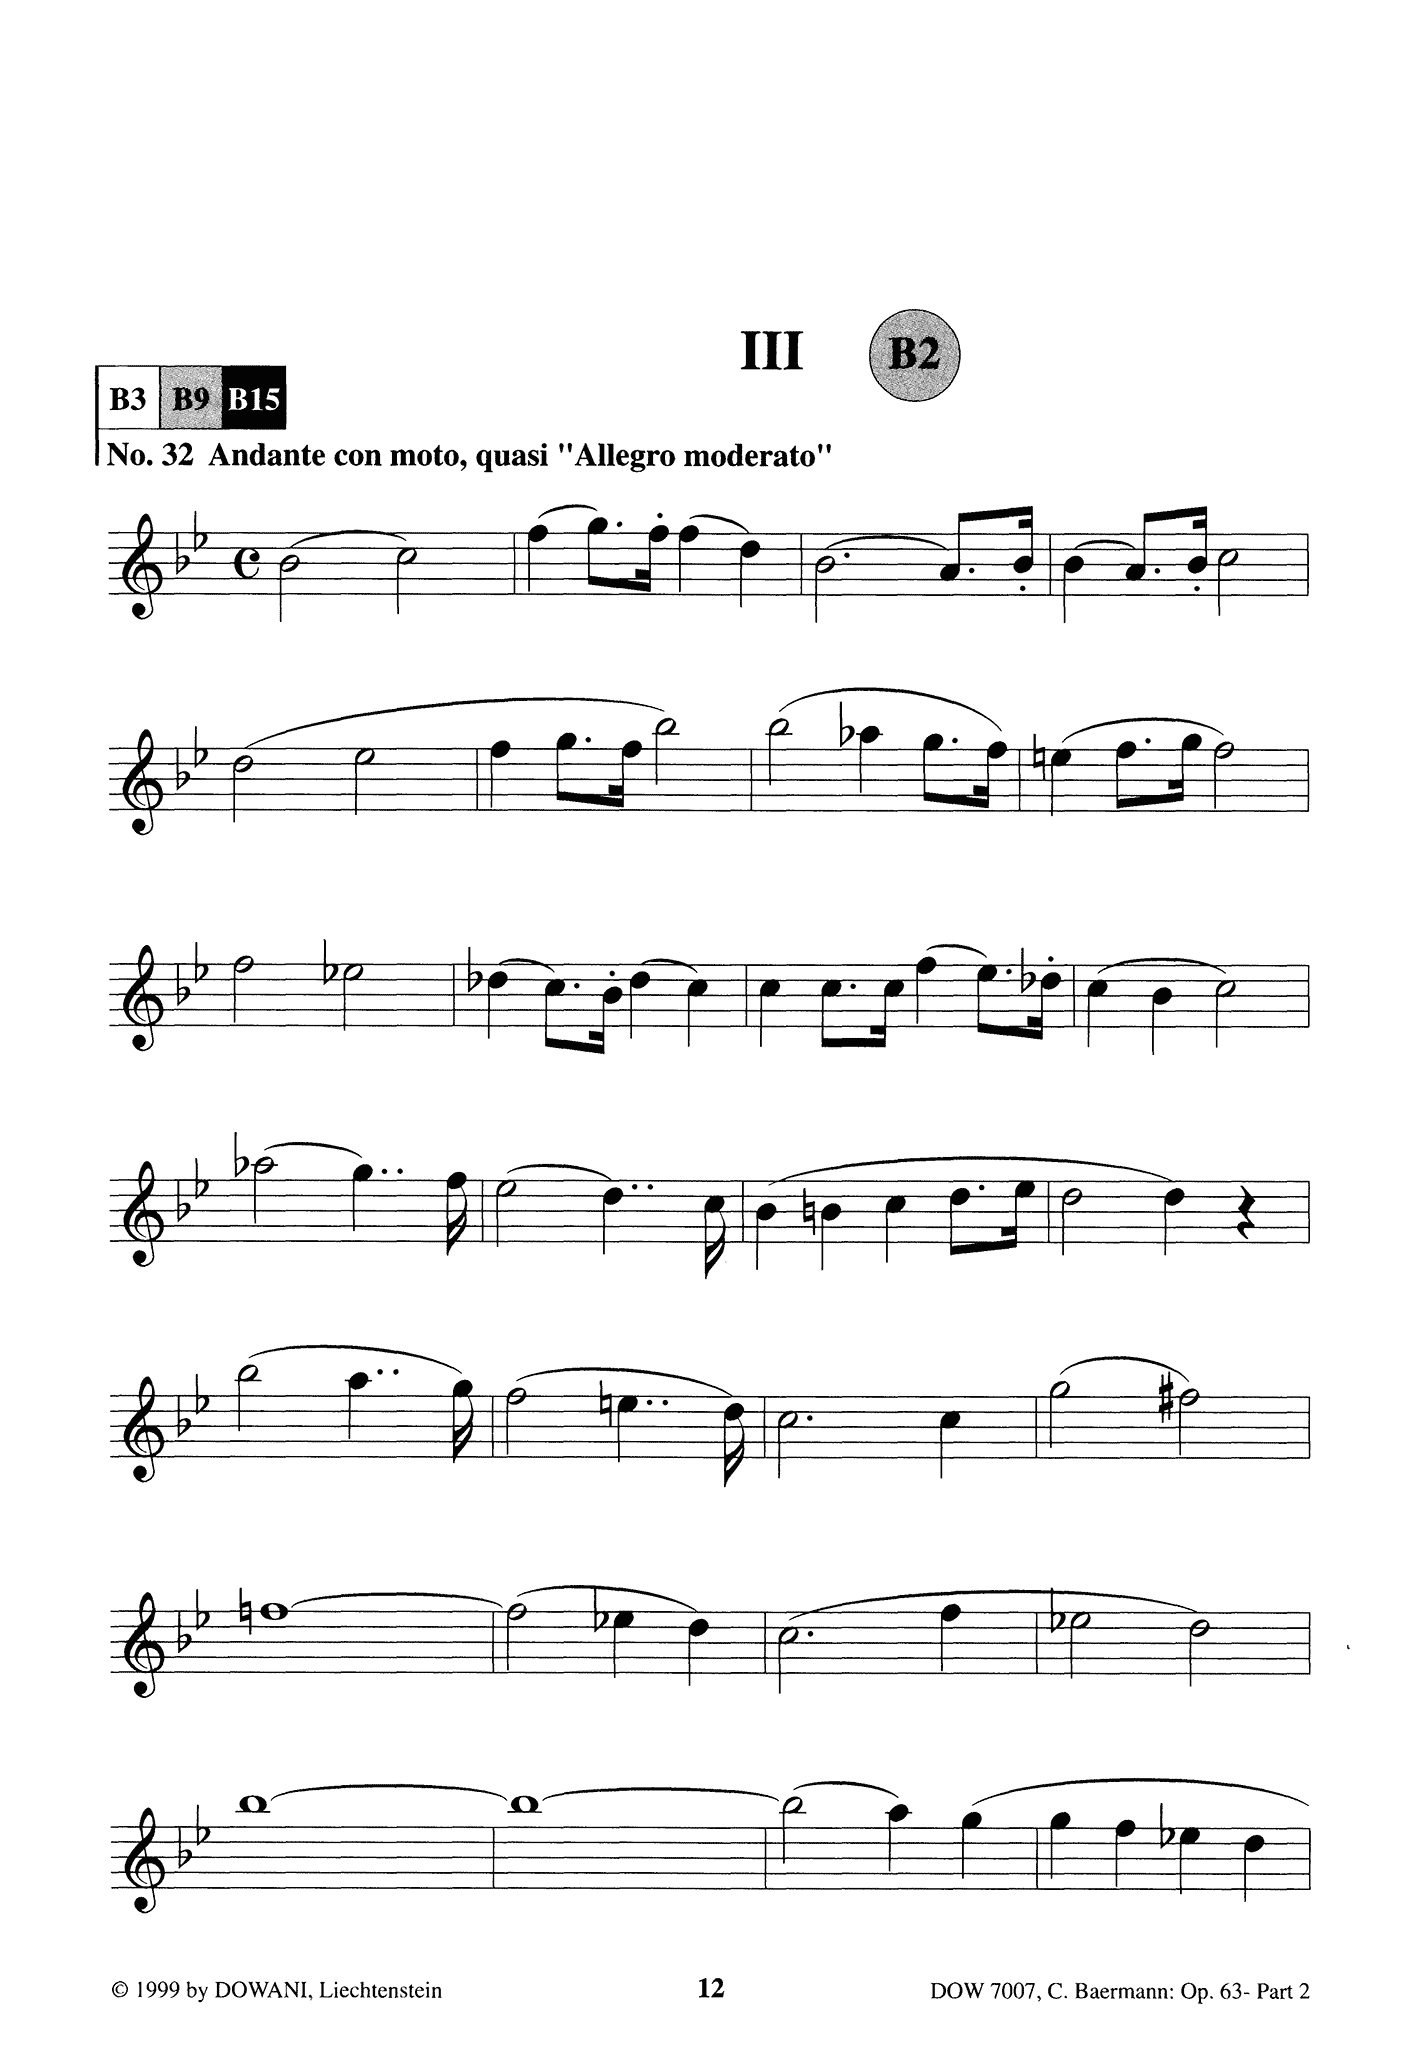 Clarinet Method, Op. 63, Div. II: Part 2 of 3 Clarinet part Page 12